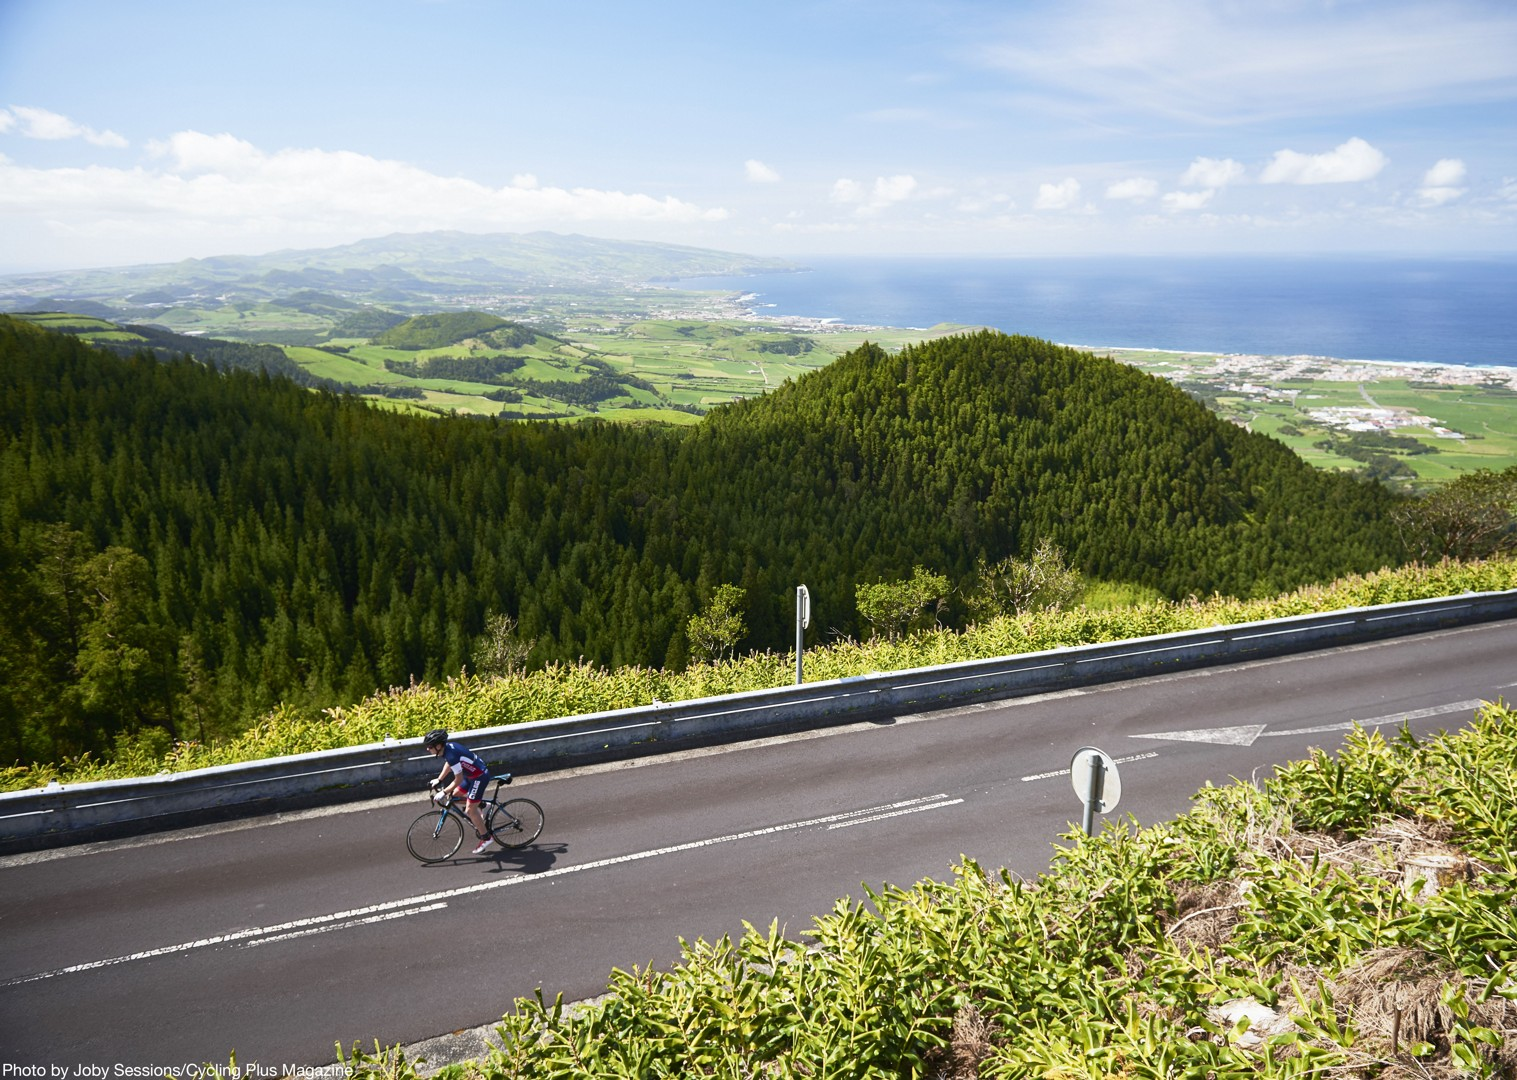 furnas-guided-road-cycling-holiday-portugal-the-azores-sao-miguel.JPG - The Azores - Lost World of Sao Miguel - Road Cycling